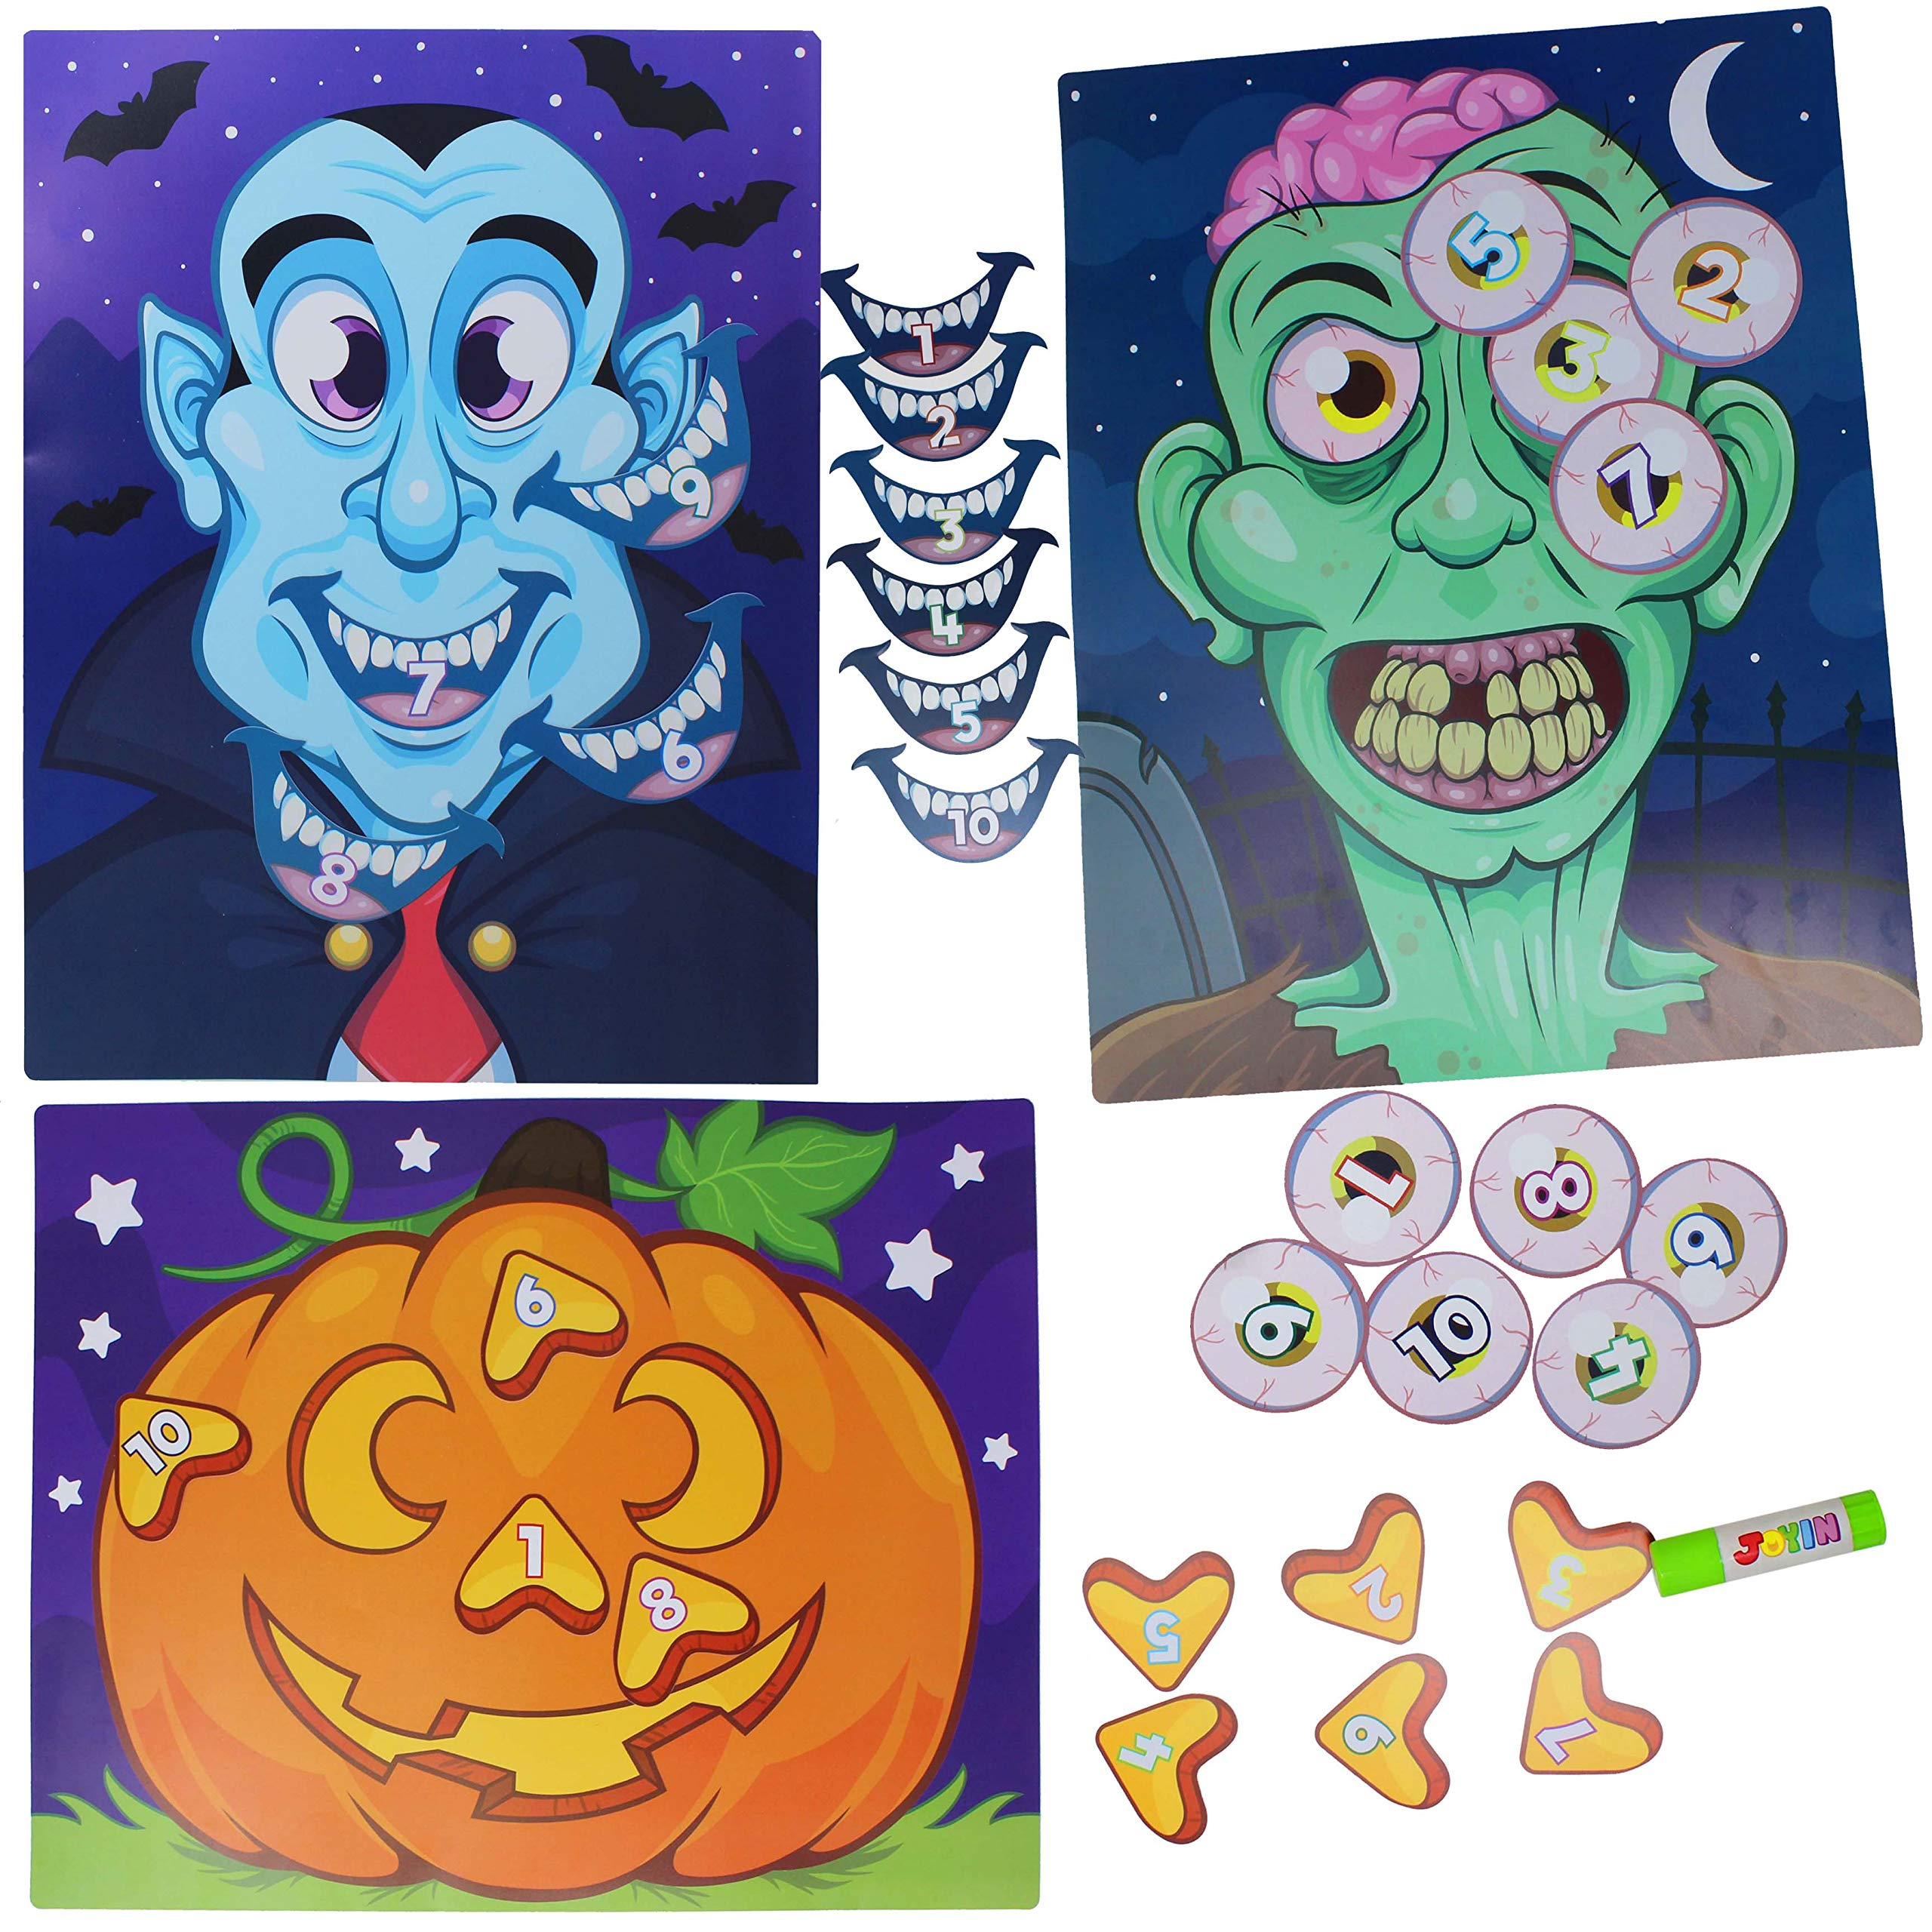 JOYIN Halloween Party Supplies Pin the Nose on Pumpkin, Pin the Eye on Zombie, Pin the Mouth on Vampire Fun Halloween Game Packs (Glue Stick Included)